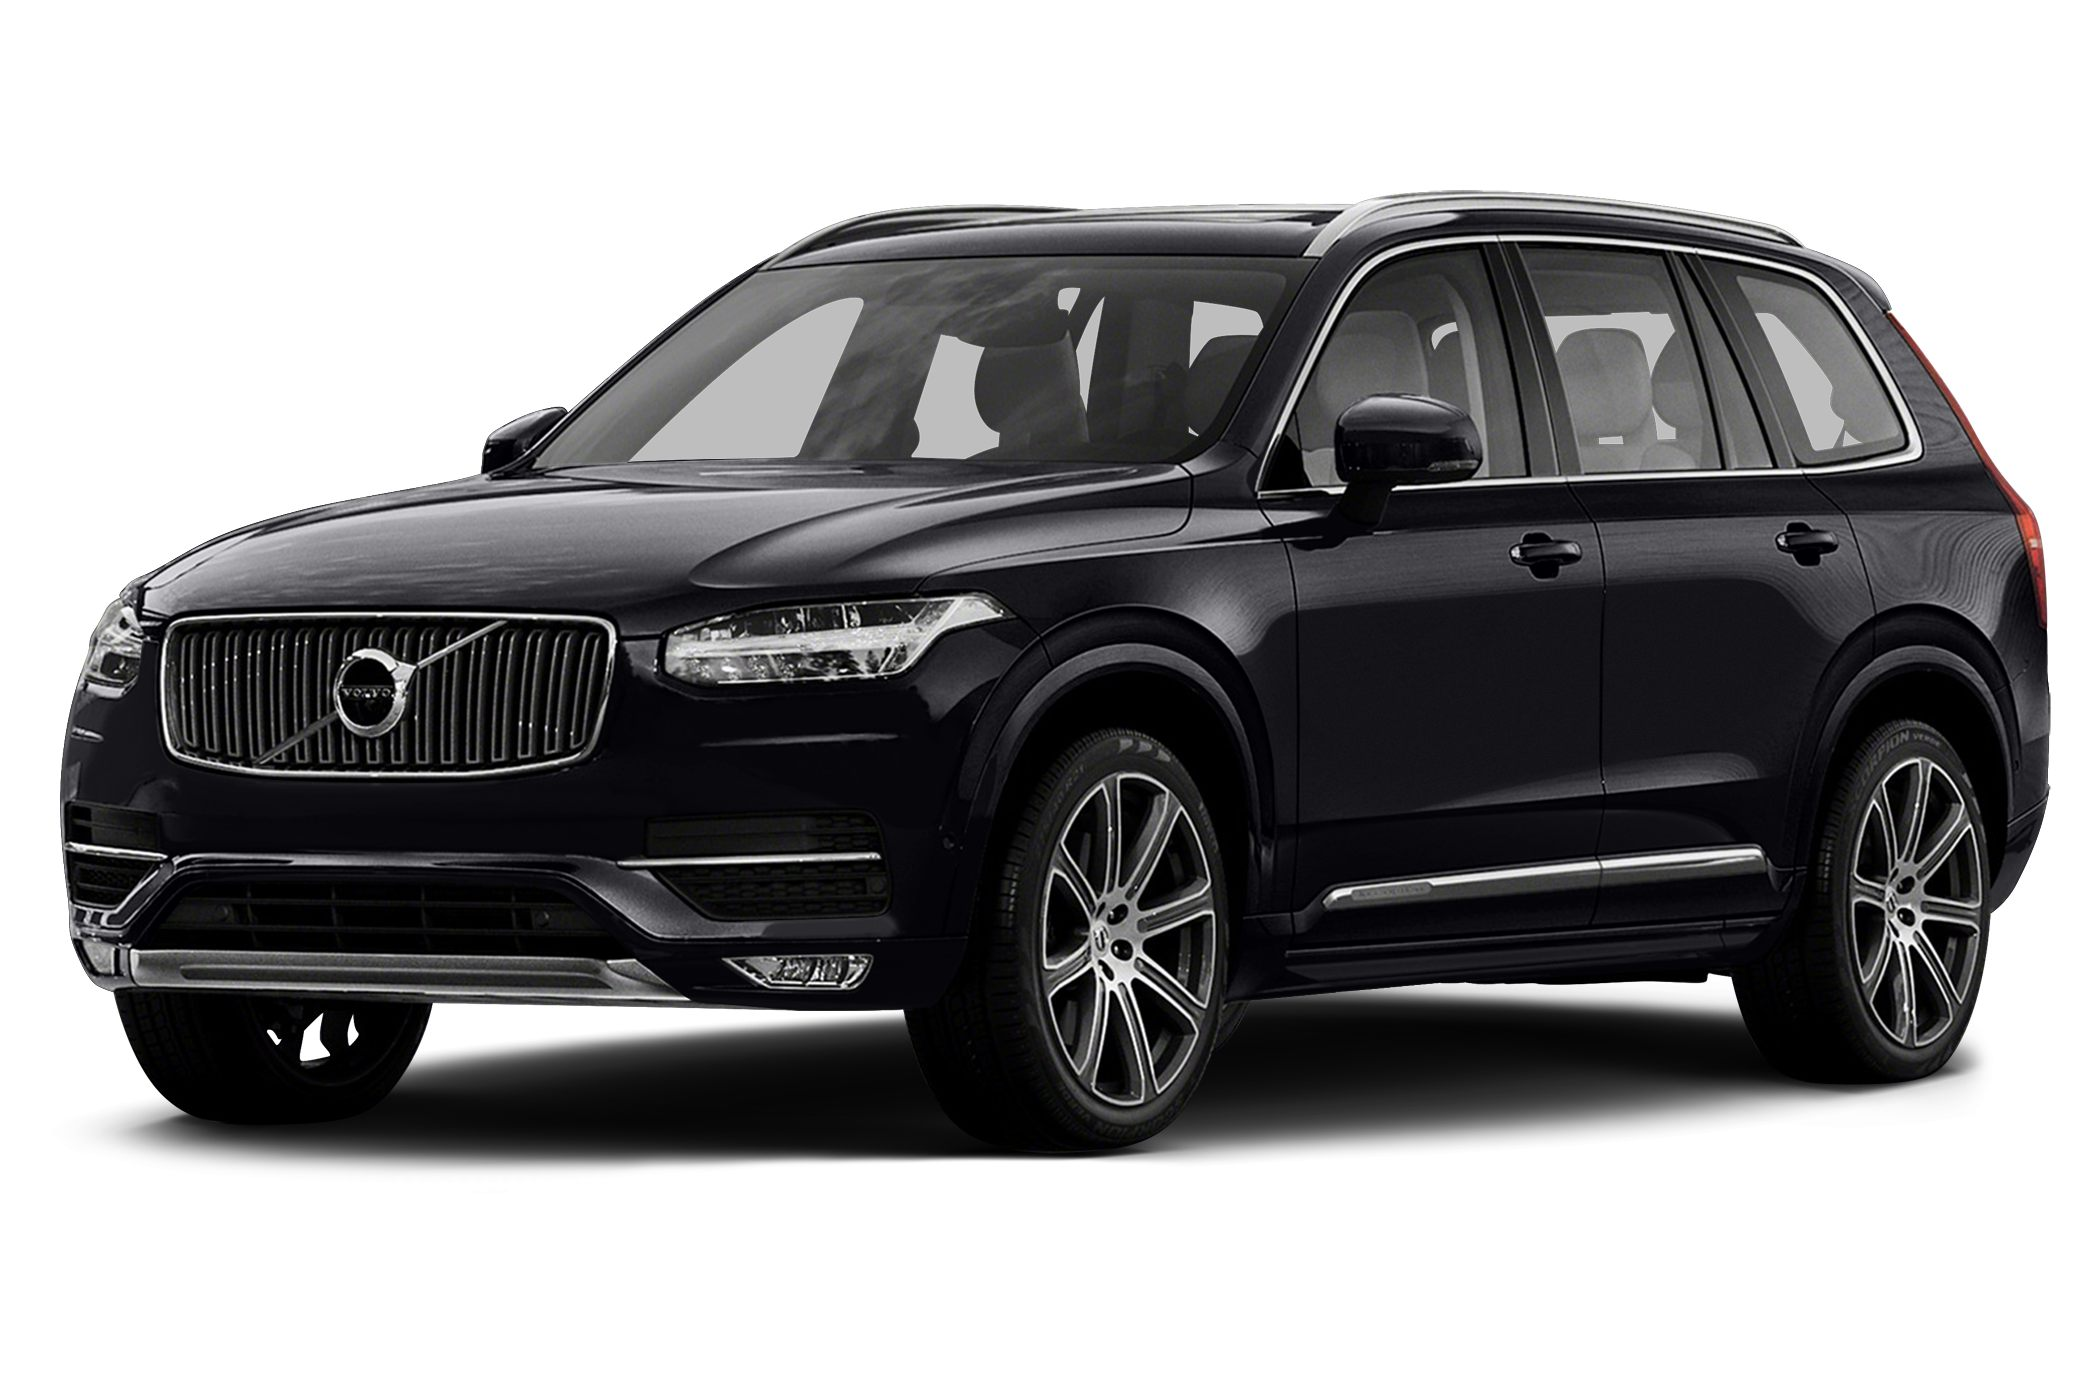 volvo xc90 2016 hd wallpapers free download. Black Bedroom Furniture Sets. Home Design Ideas